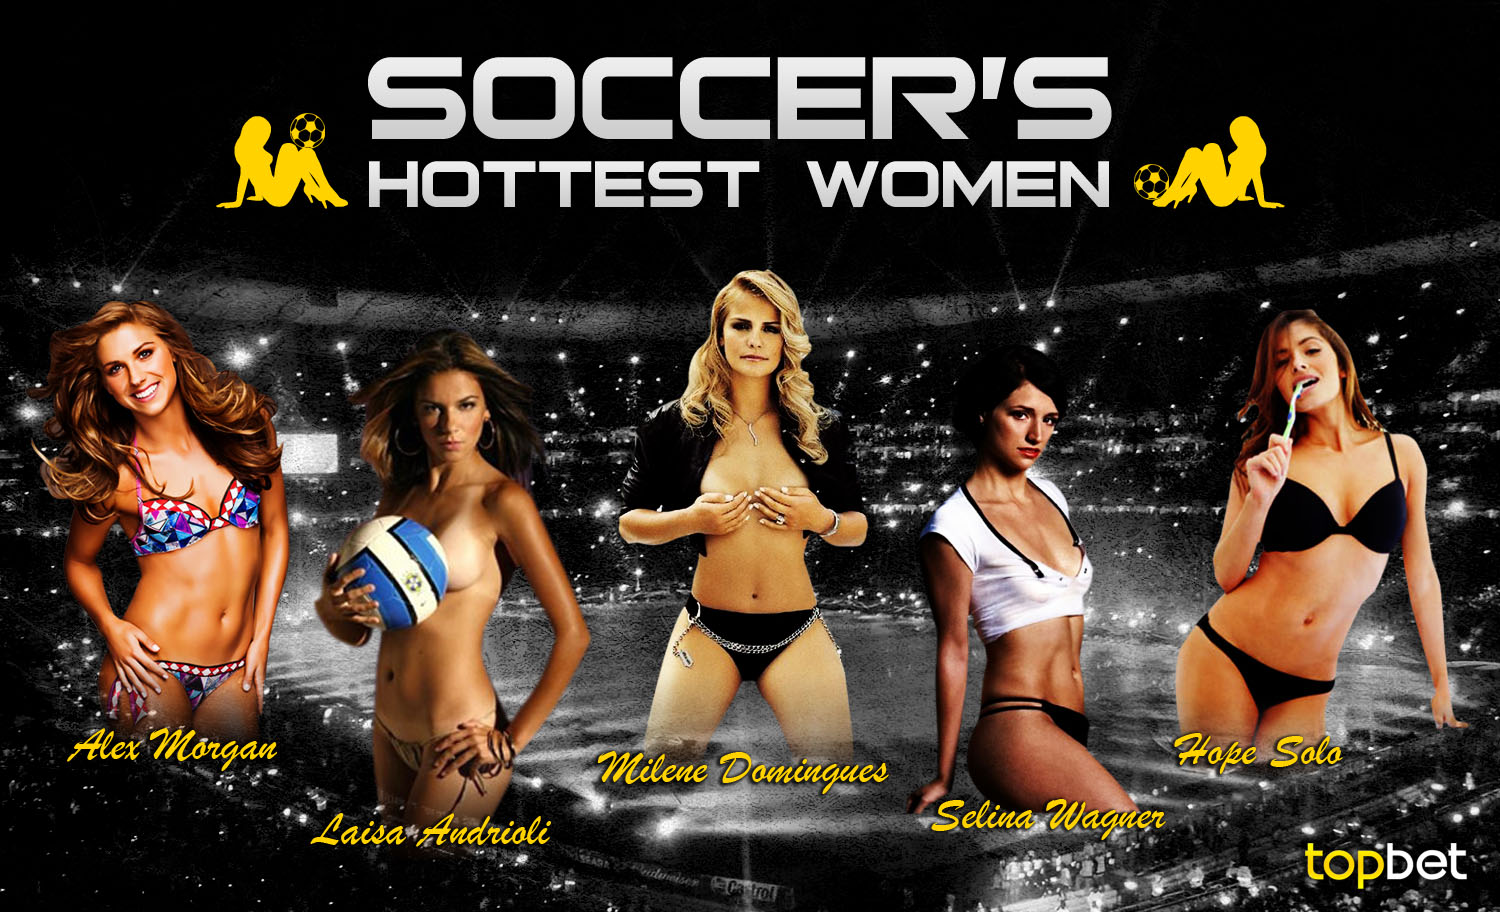 hot female soccer players naked